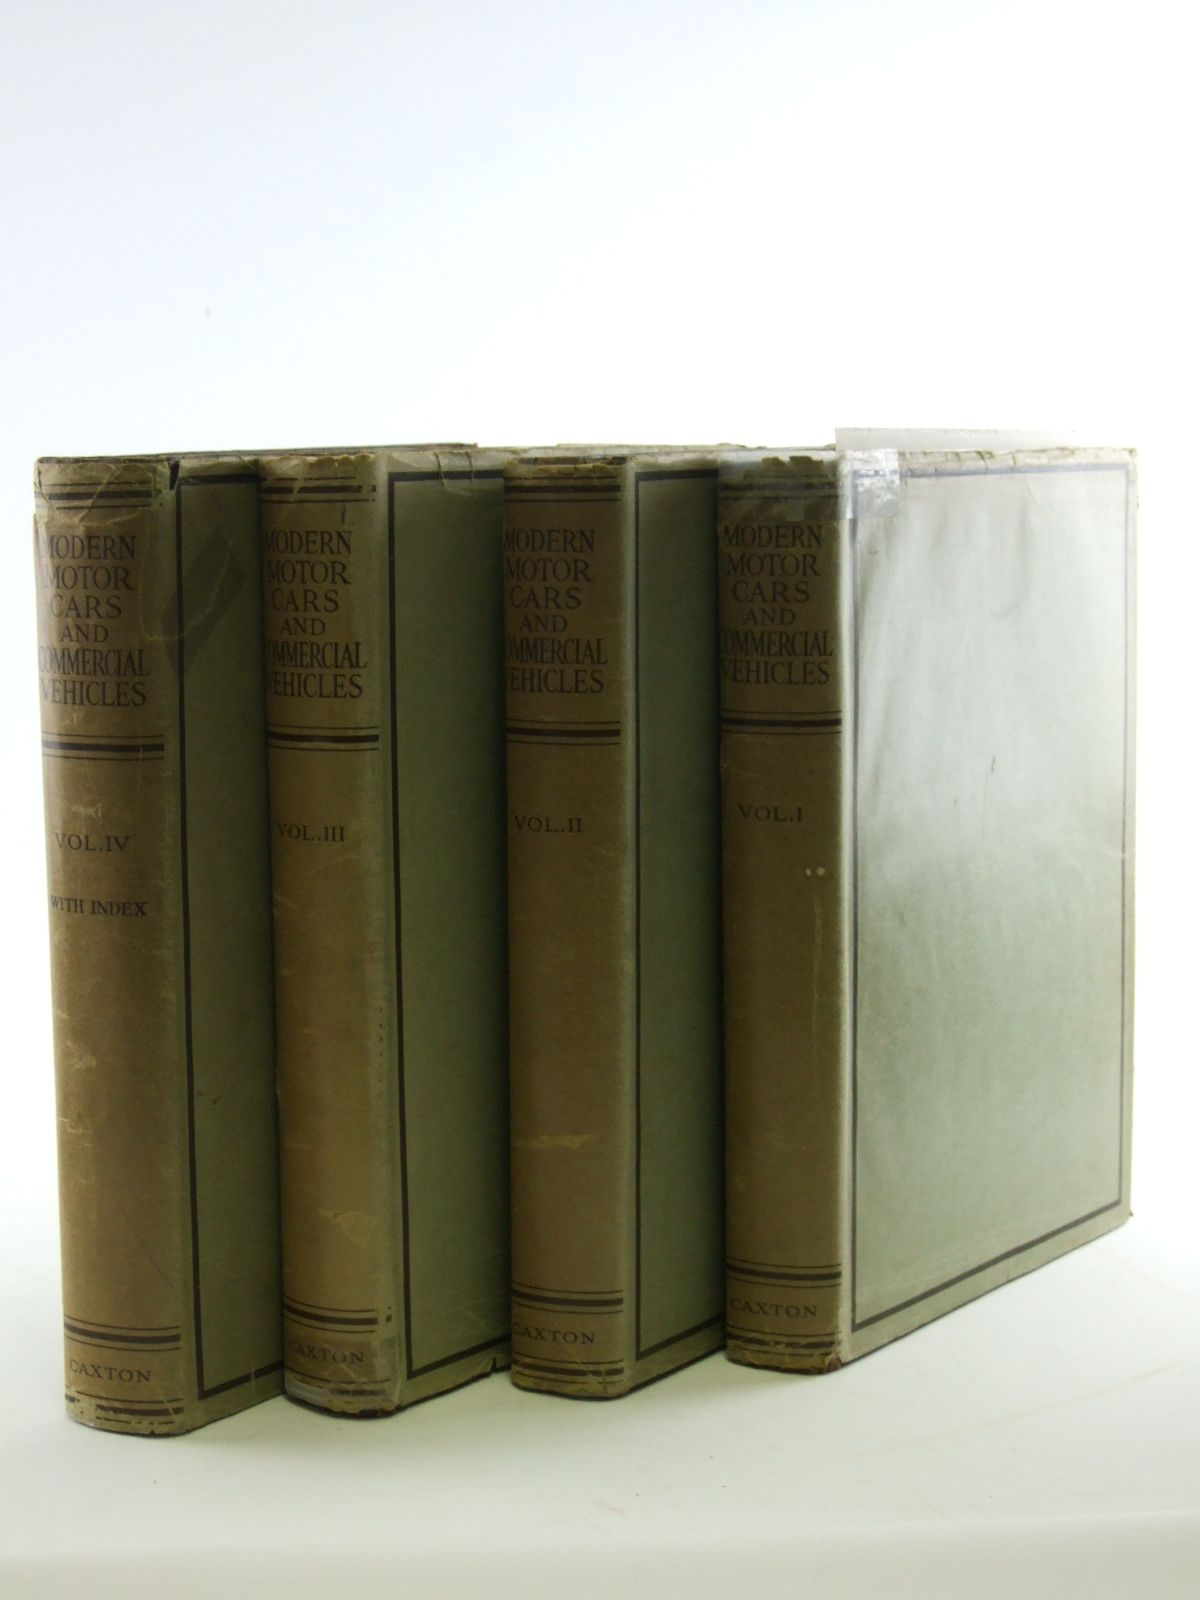 Photo of MODERN MOTOR CARS AND COMMERCIAL VEHICLES (4 VOLUMES) written by Judge, Arthur W. published by The Caxton Publishing Company Ltd. (STOCK CODE: 1602791)  for sale by Stella & Rose's Books